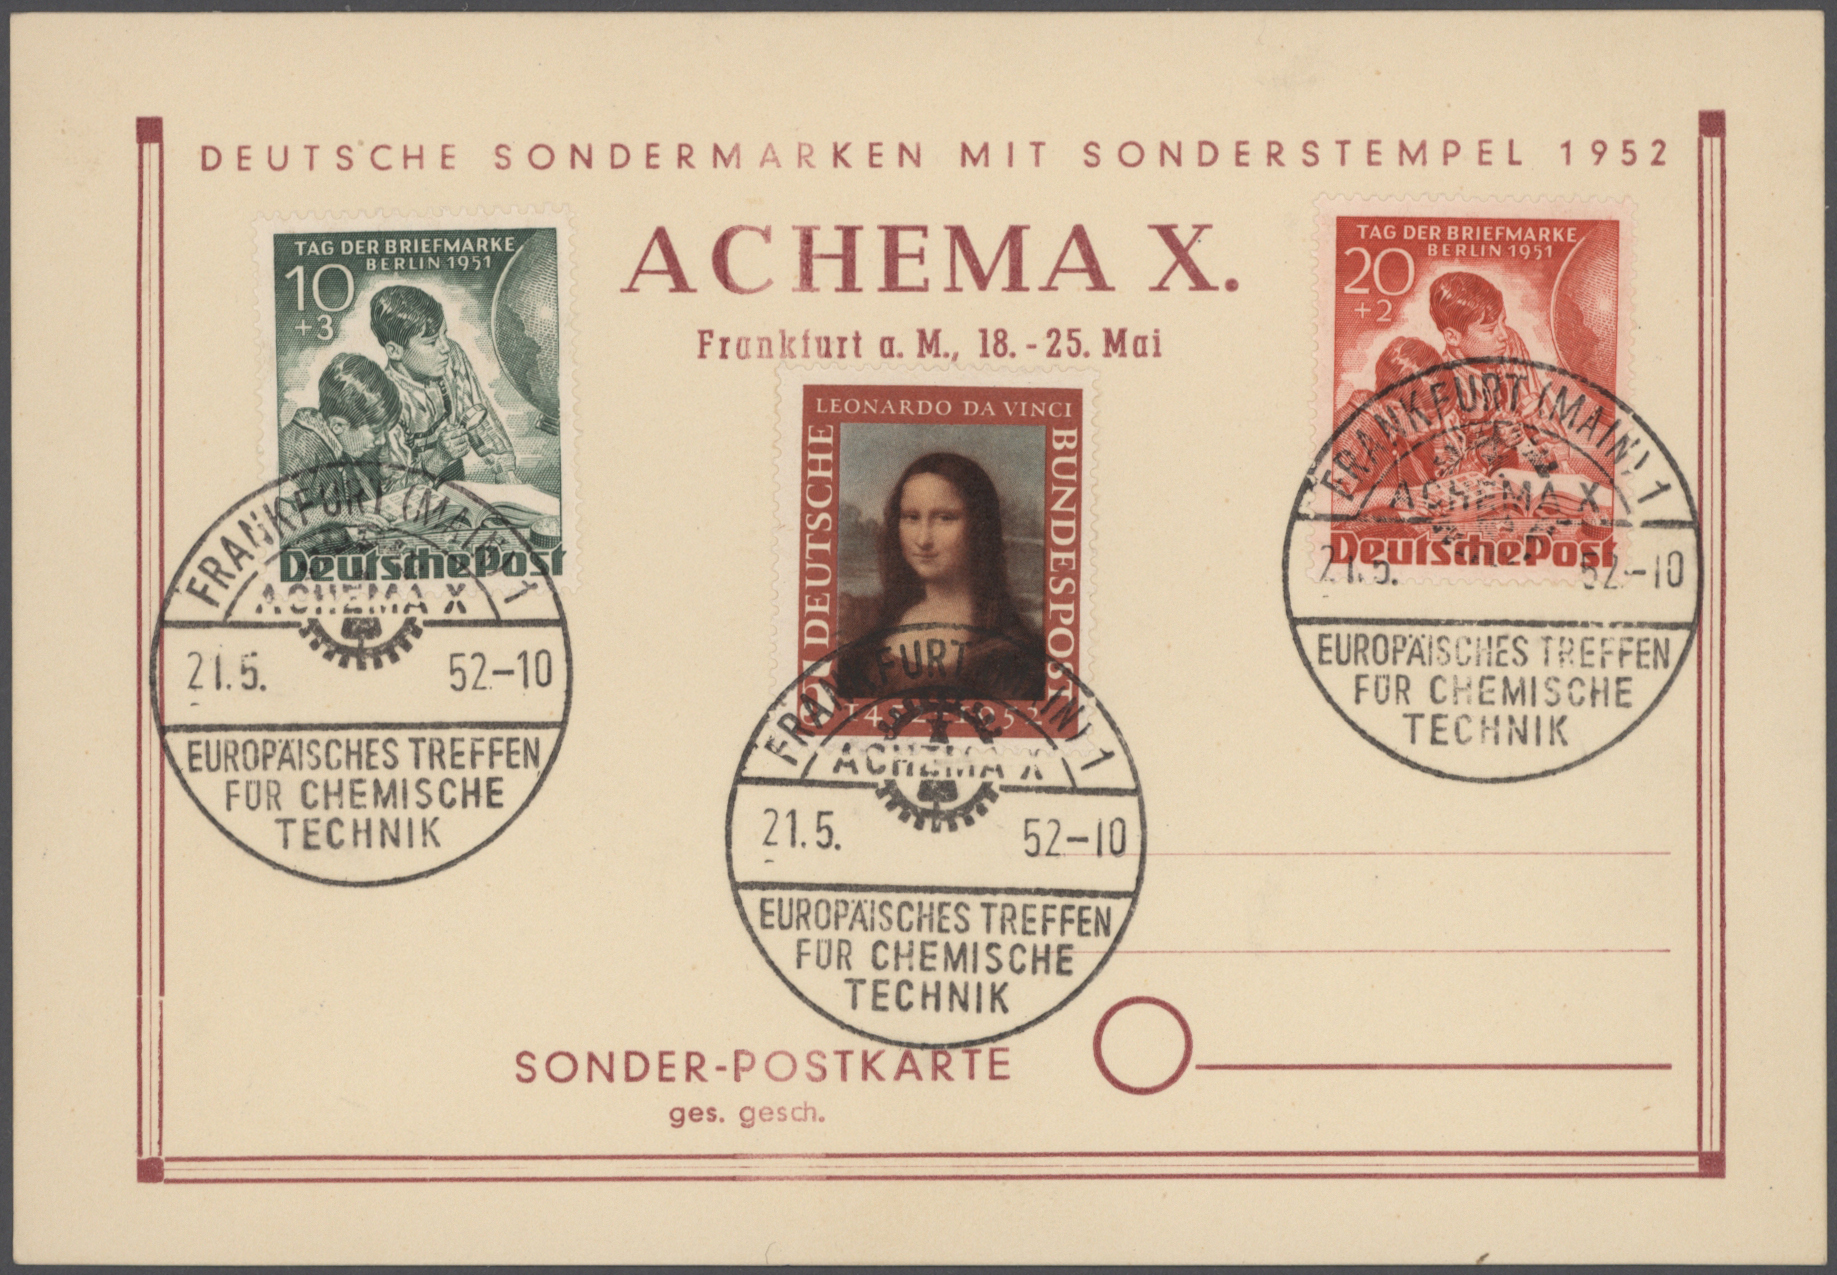 Lot 26218 - nachlässe  -  Auktionshaus Christoph Gärtner GmbH & Co. KG Sale #46 Gollcetions Germany - including the suplement